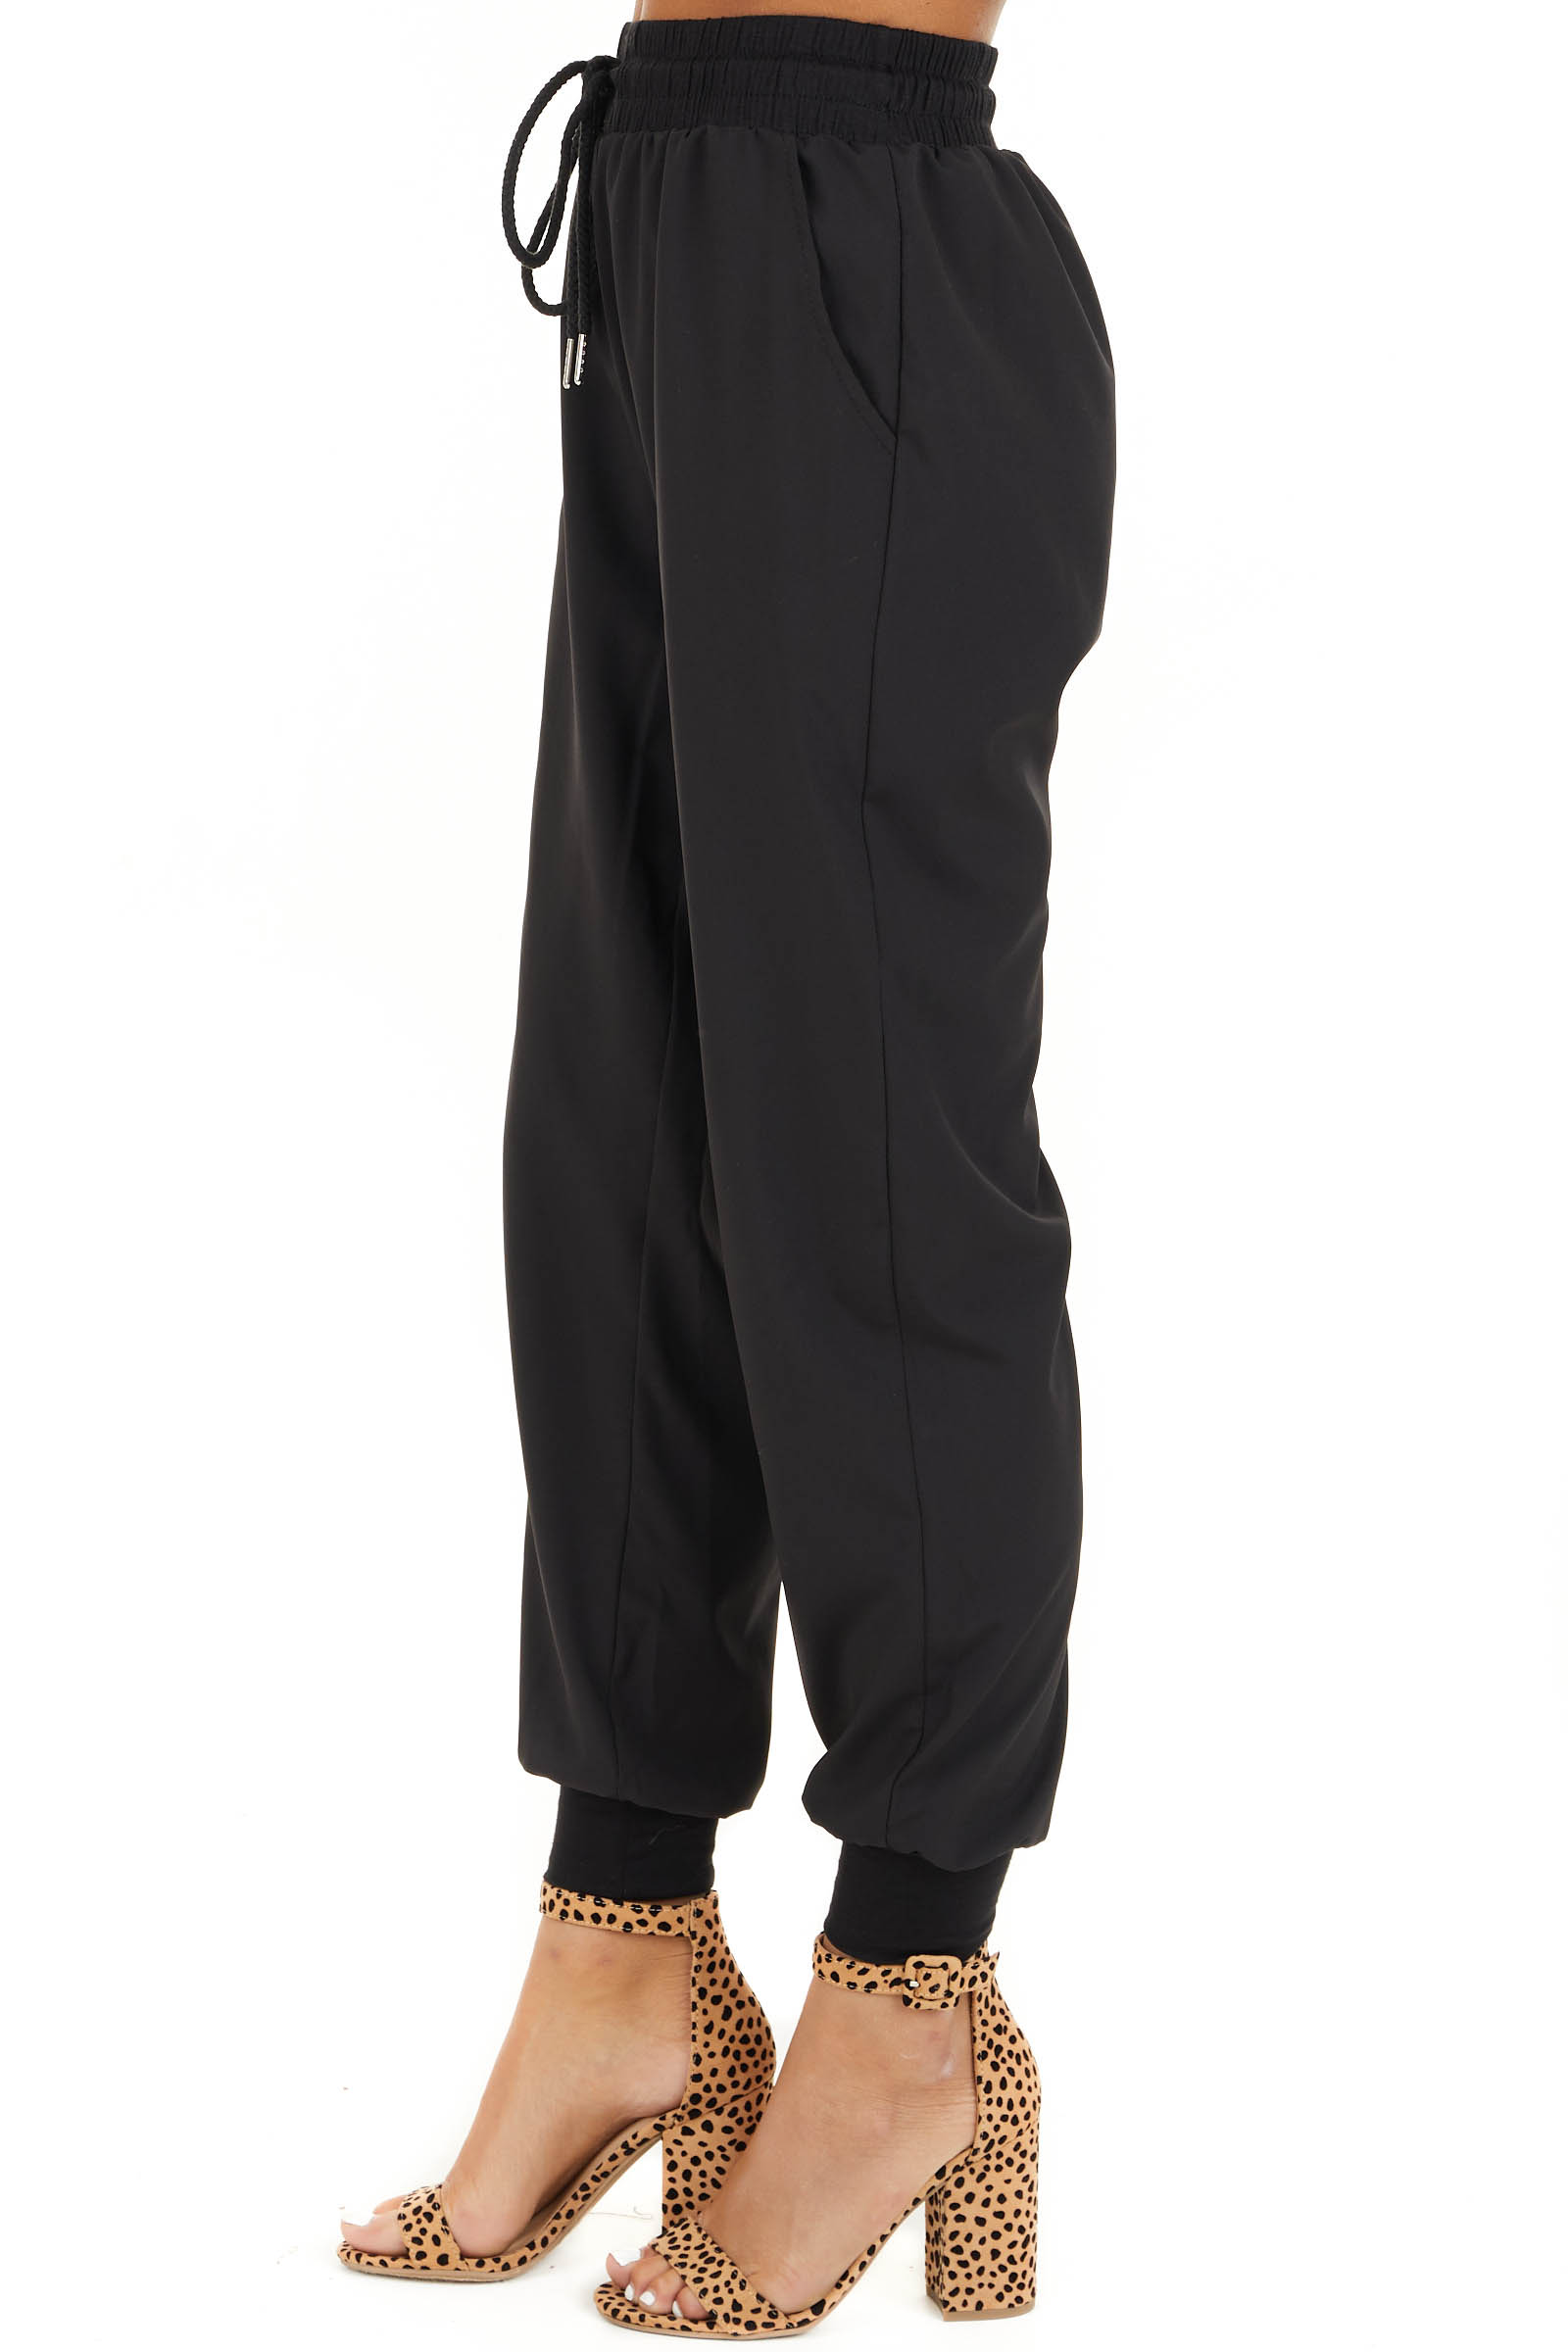 Black Jogger Pants with Elastic Waist and Pockets side view